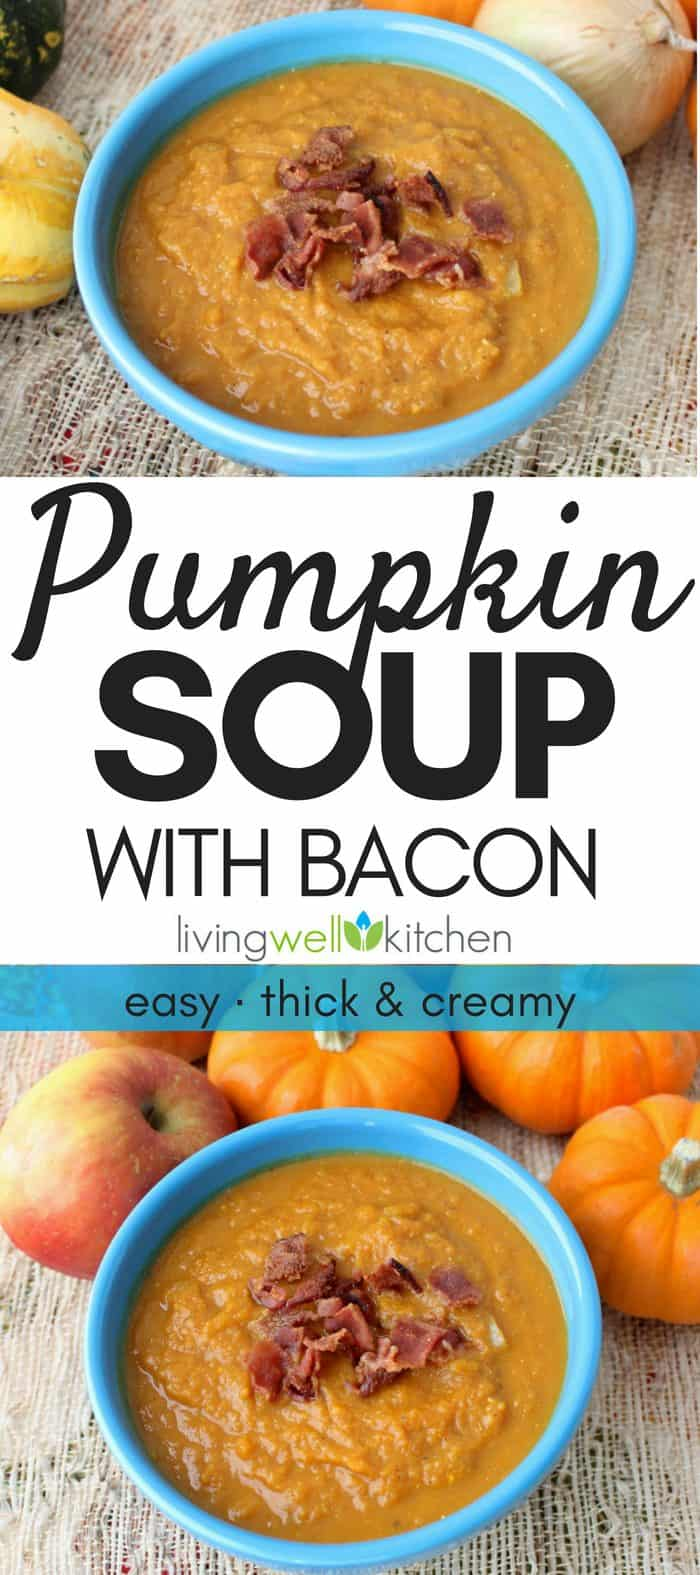 Pumpkin Soup with Bacon photo collage